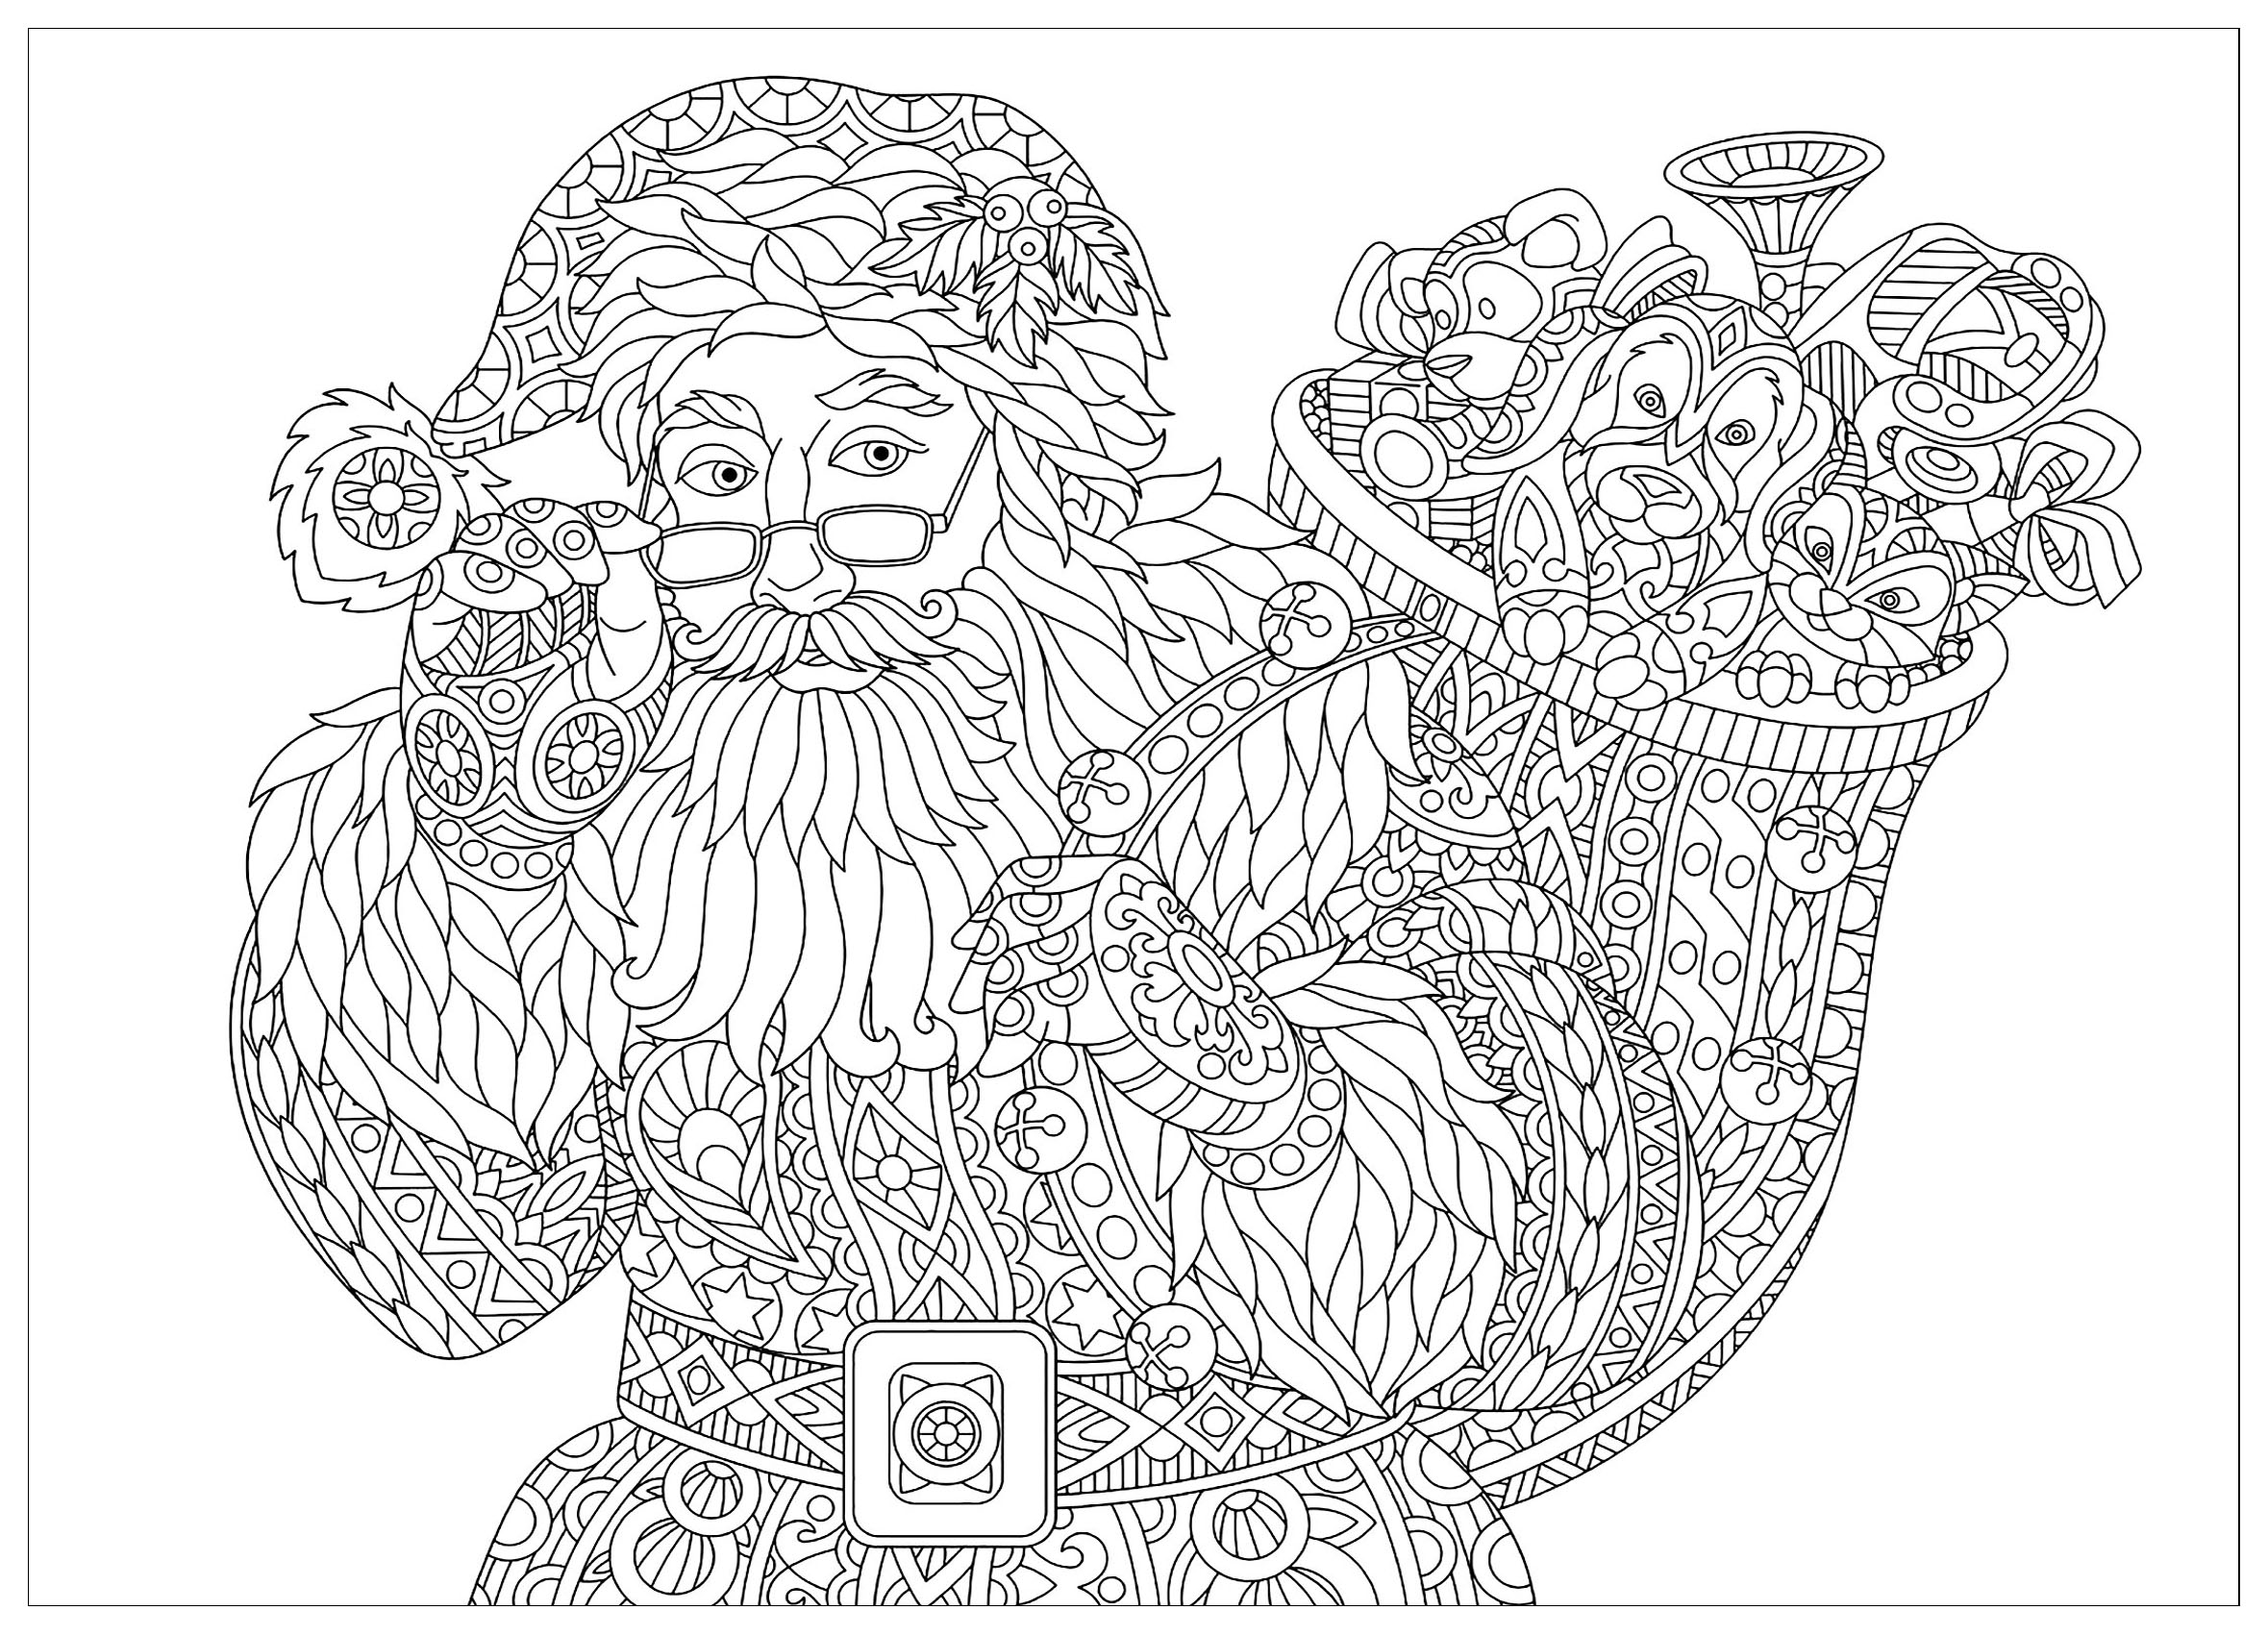 Coloring Page Of Santa Claus With Full Bag Holiday Gifts And Christmas Vintage Snowflakes